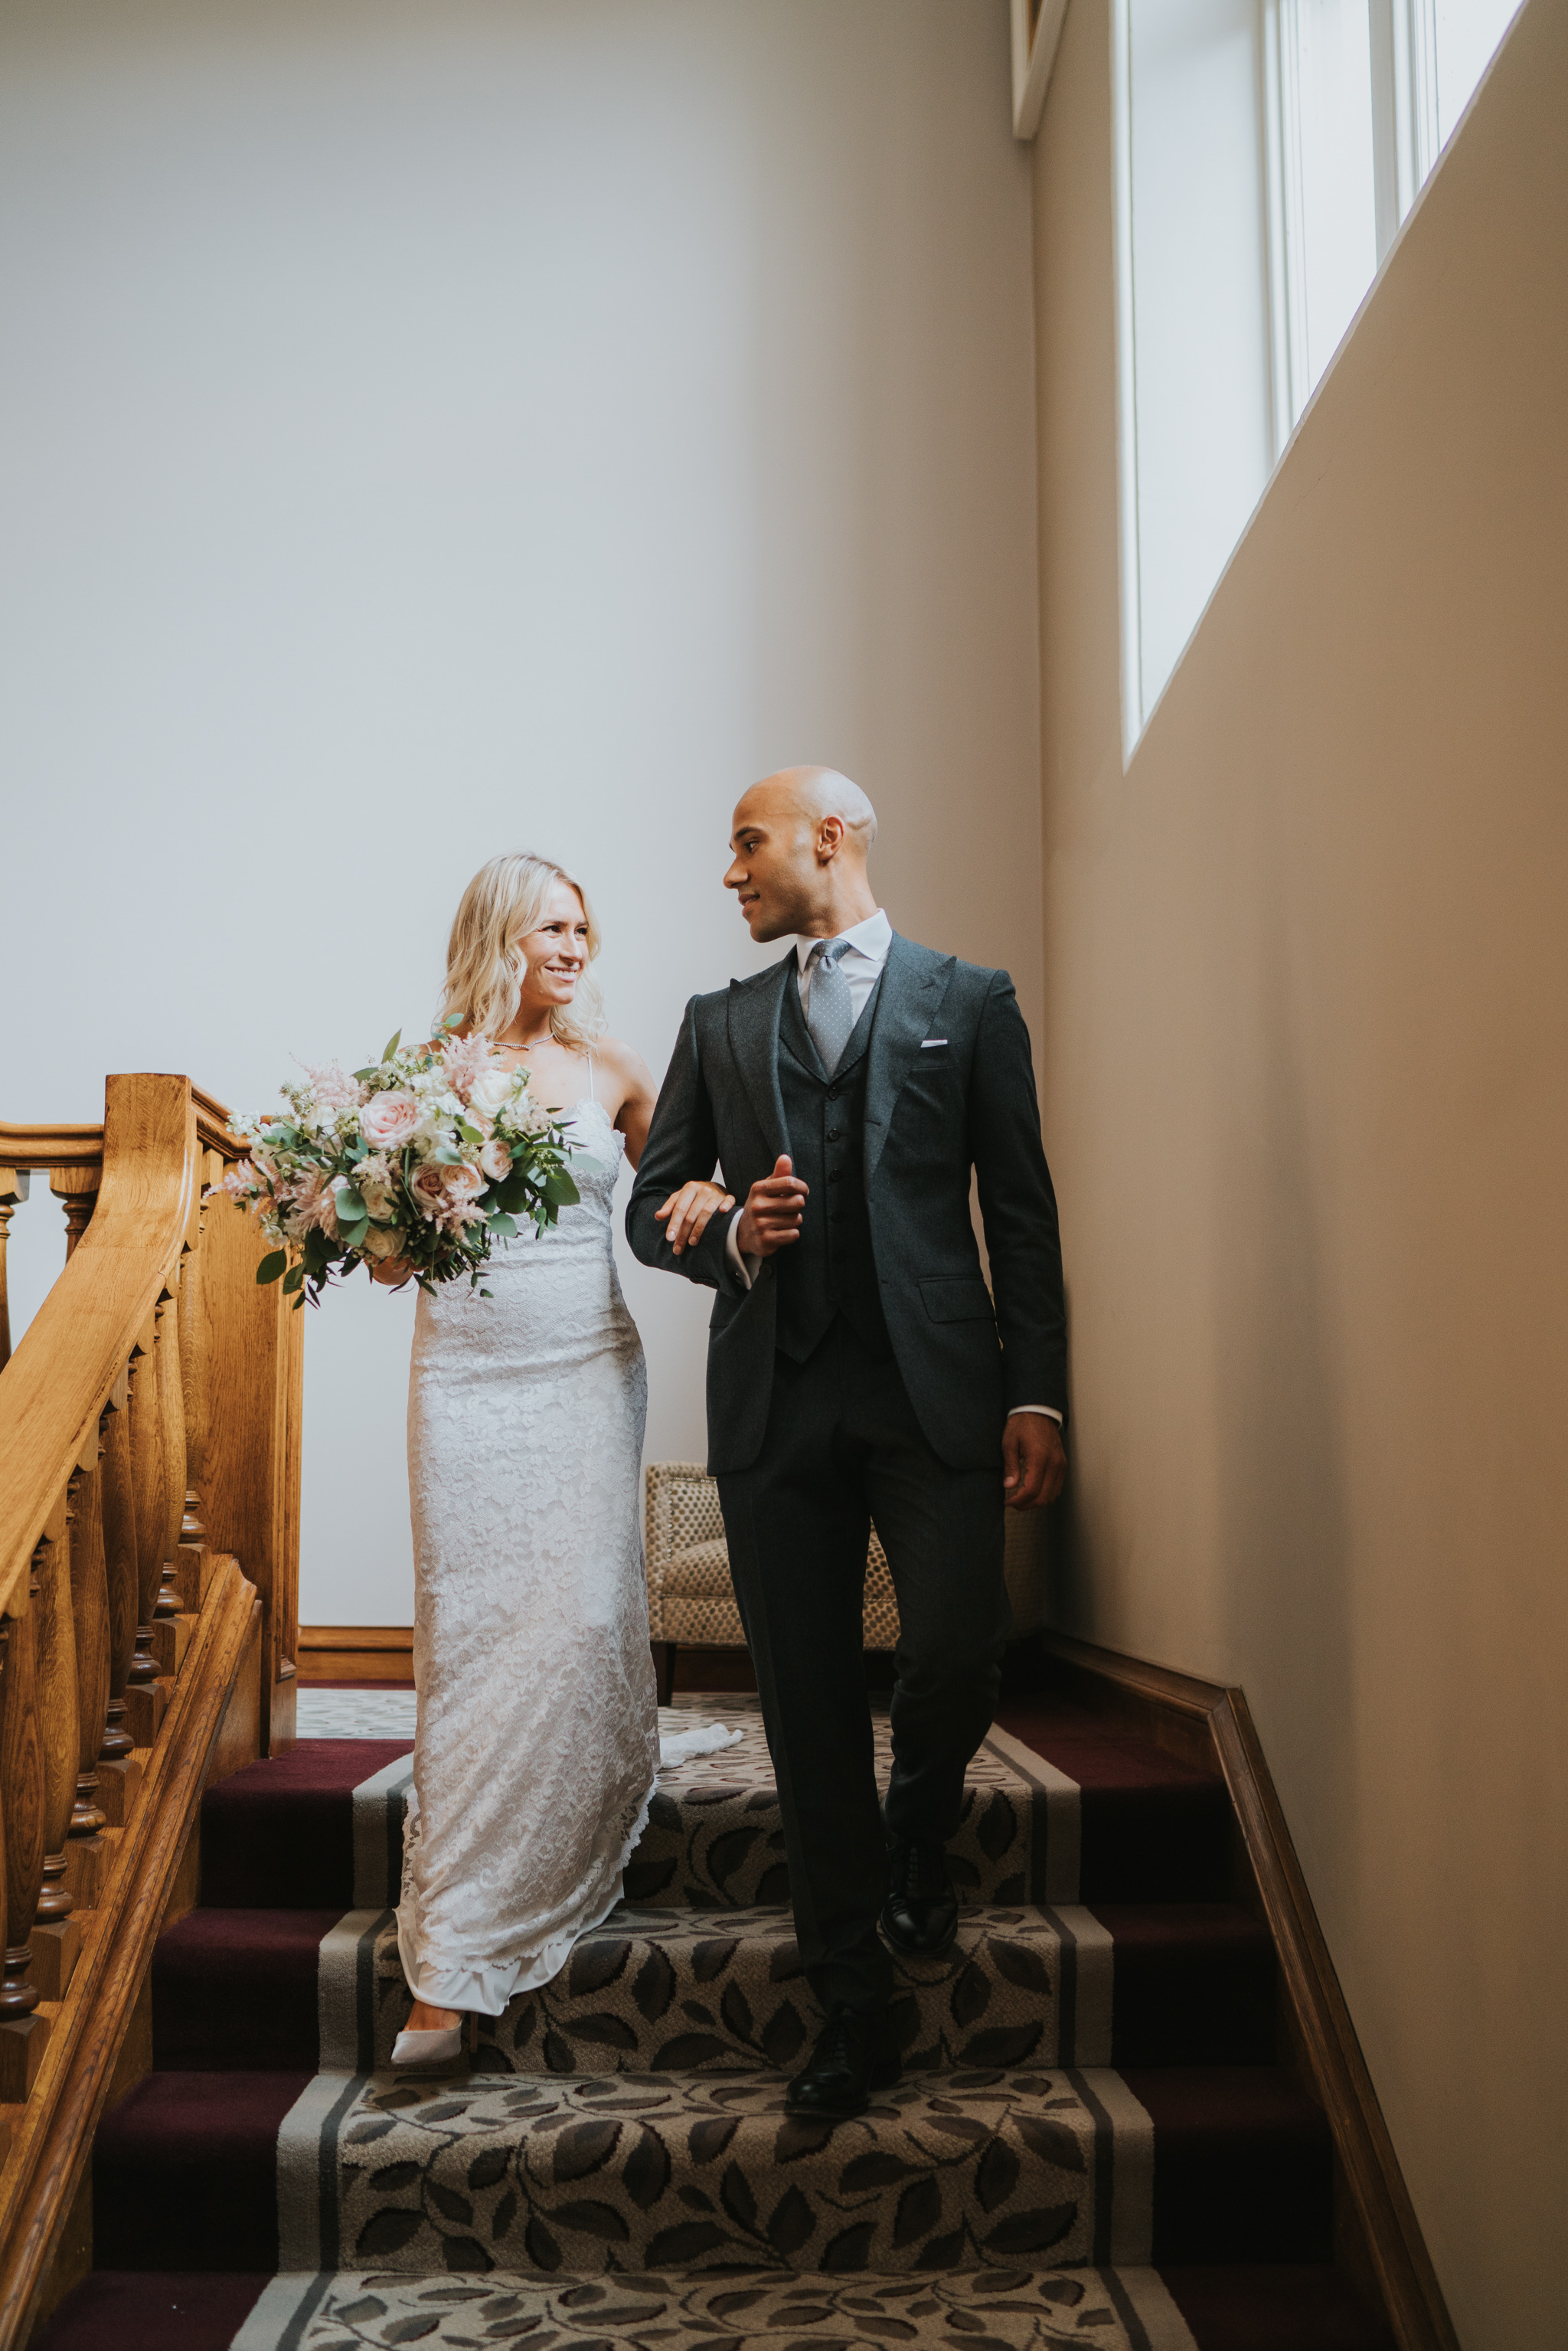 intimate-english-church-wedding-sarah-alex-colchester-essex-grace-elizabeth-colchester-essex-alternative-wedding-lifestyle-photographer-essex-suffolk-norfolk-devon (9 of 92).jpg